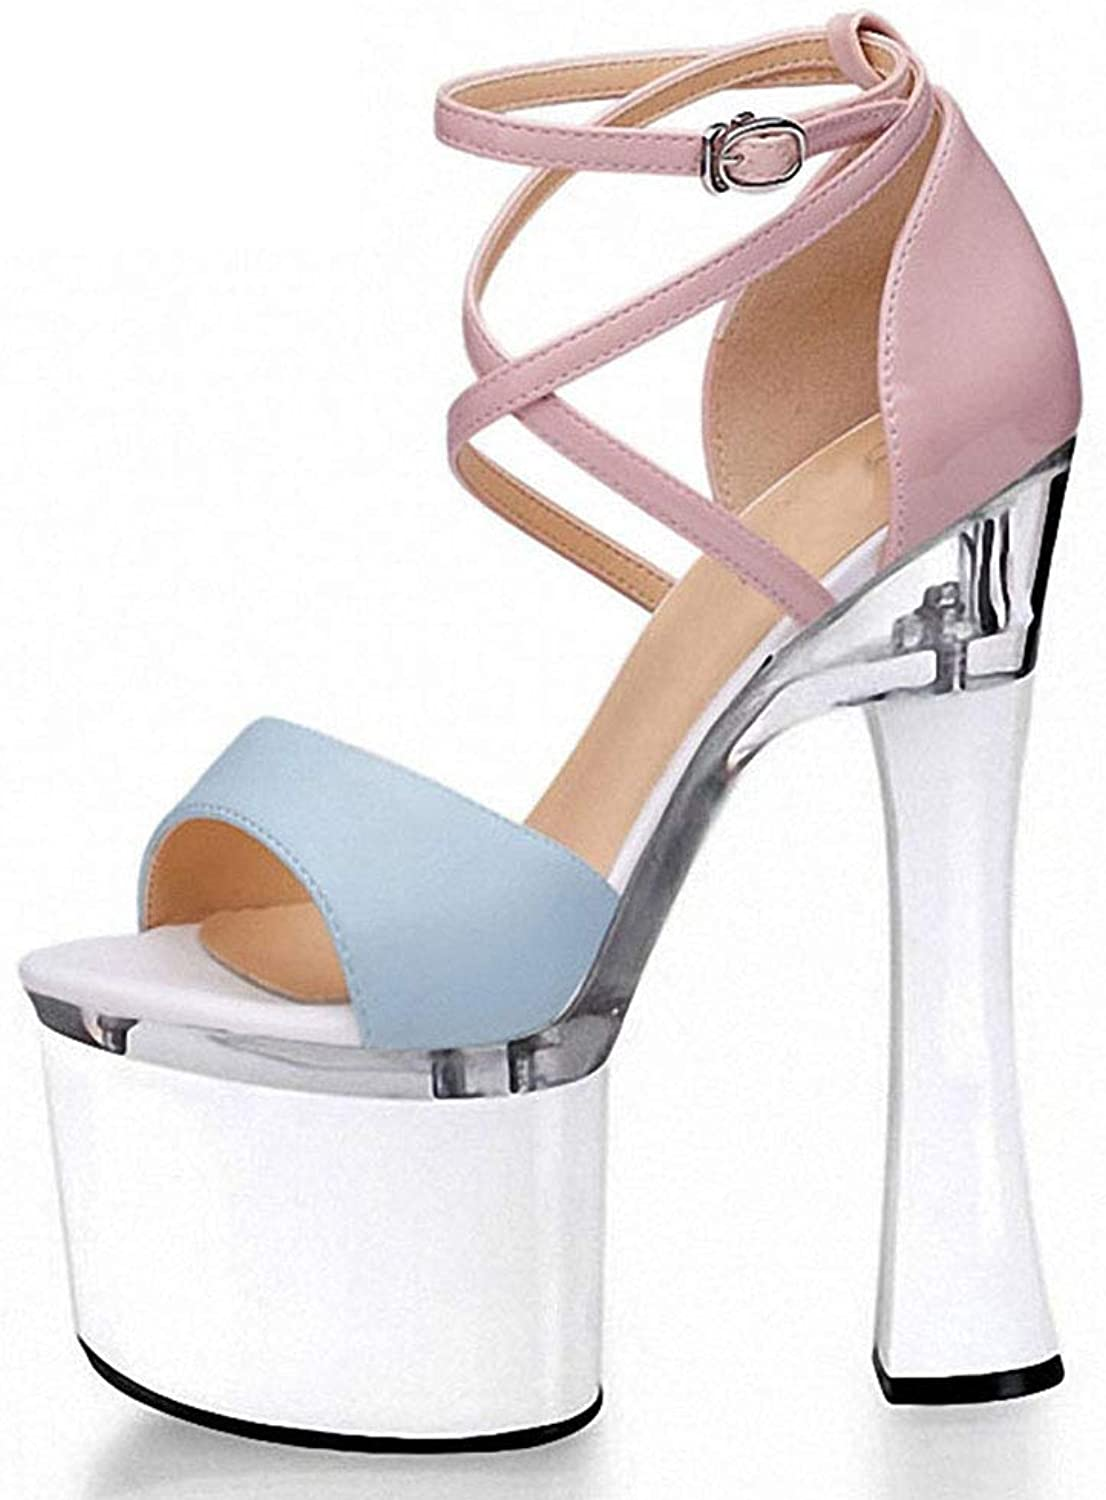 Women's High Heels, 18cm Thick with European and American Style Roman Women's shoes with Super High Heel Platform Sexy Nightclub Hollow Fish Mouth Sandals,a,38